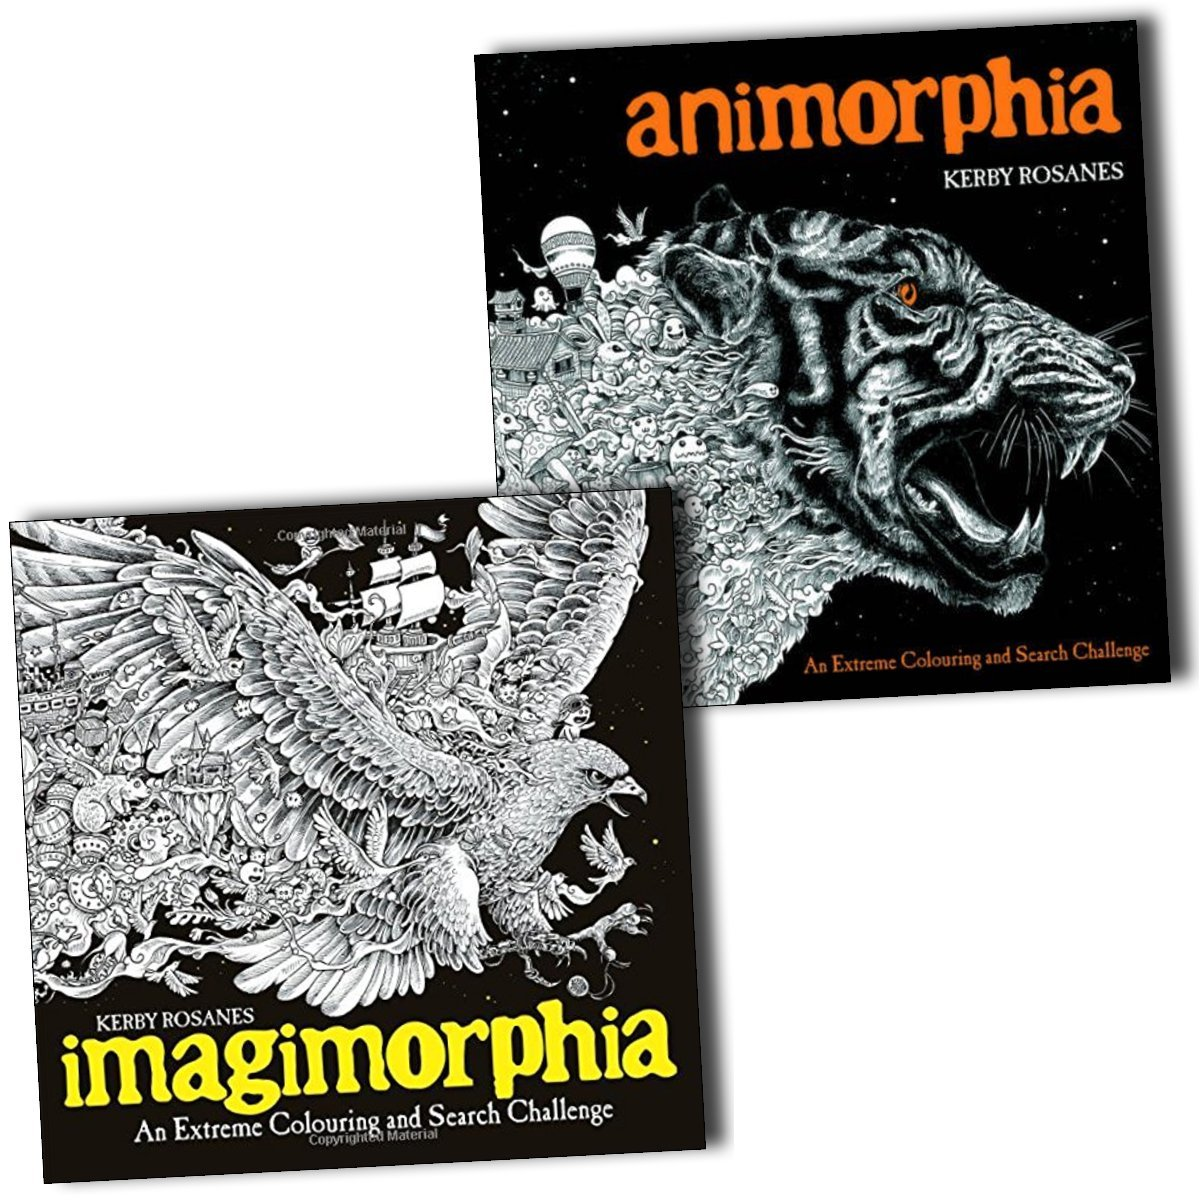 Animorphia an extreme coloring and search challenge by kerby rosanes - Animorphia And Imagimorphia An Extreme Colouring And Search Challenge 2 Books Collection Amazon Co Uk Kerby Rosanes 9789124367916 Books